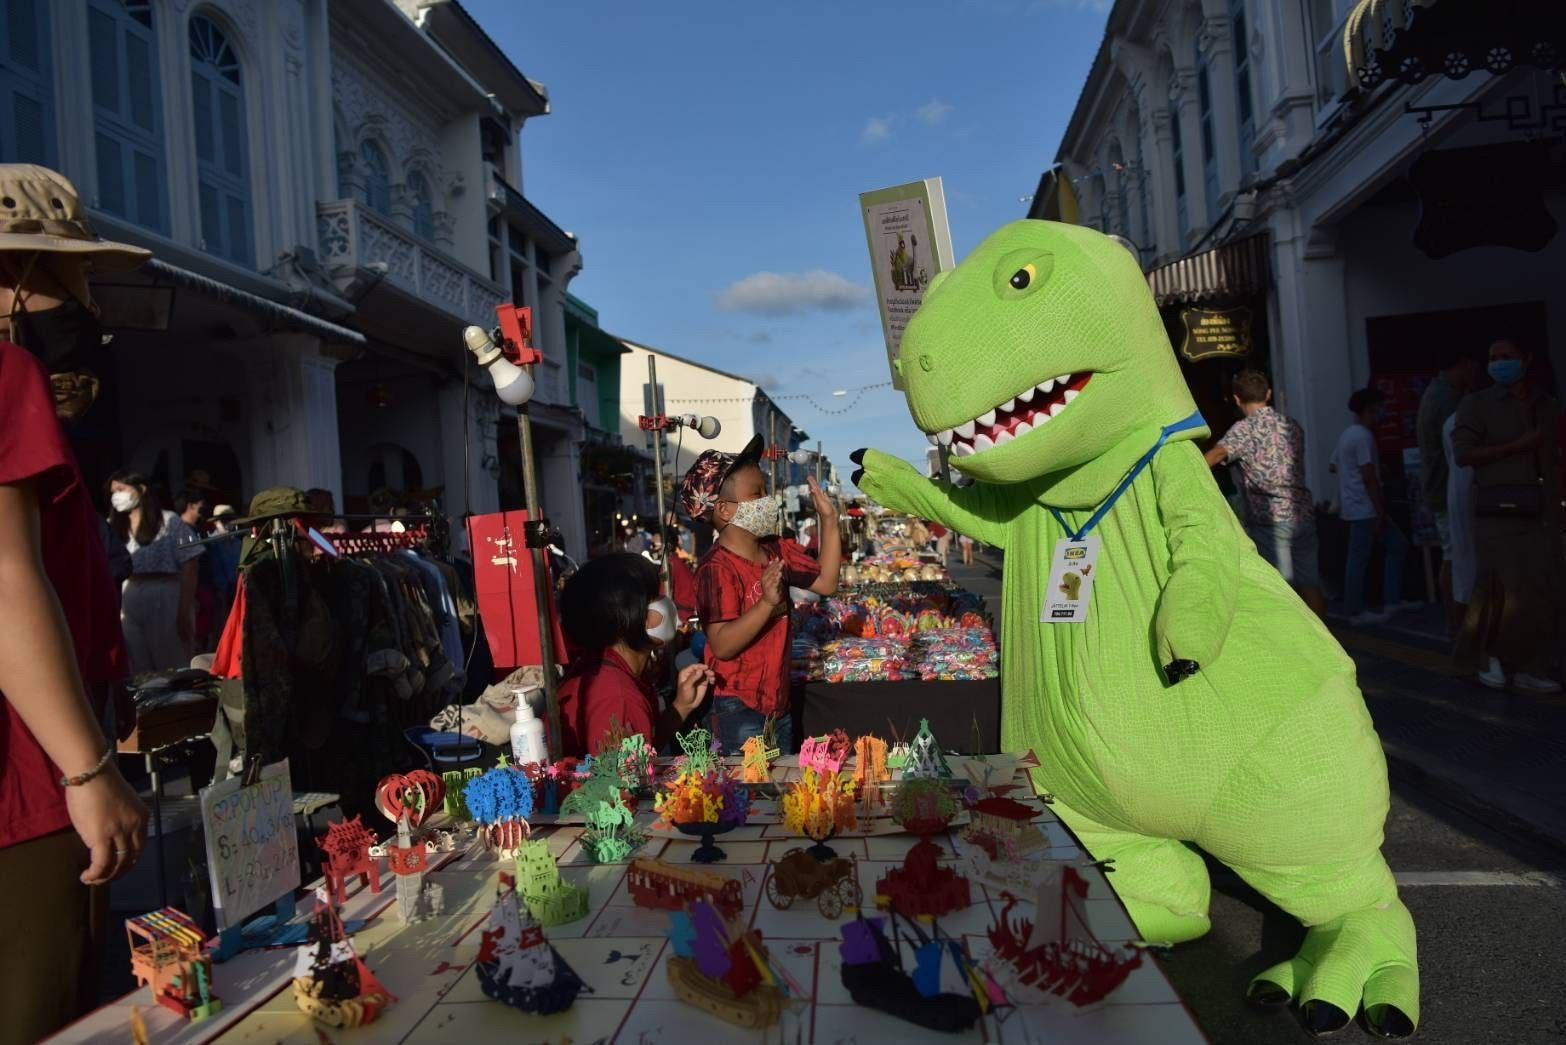 Thai tourism cavalcade rolls into town to get feedback on Phuket Model | Thaiger